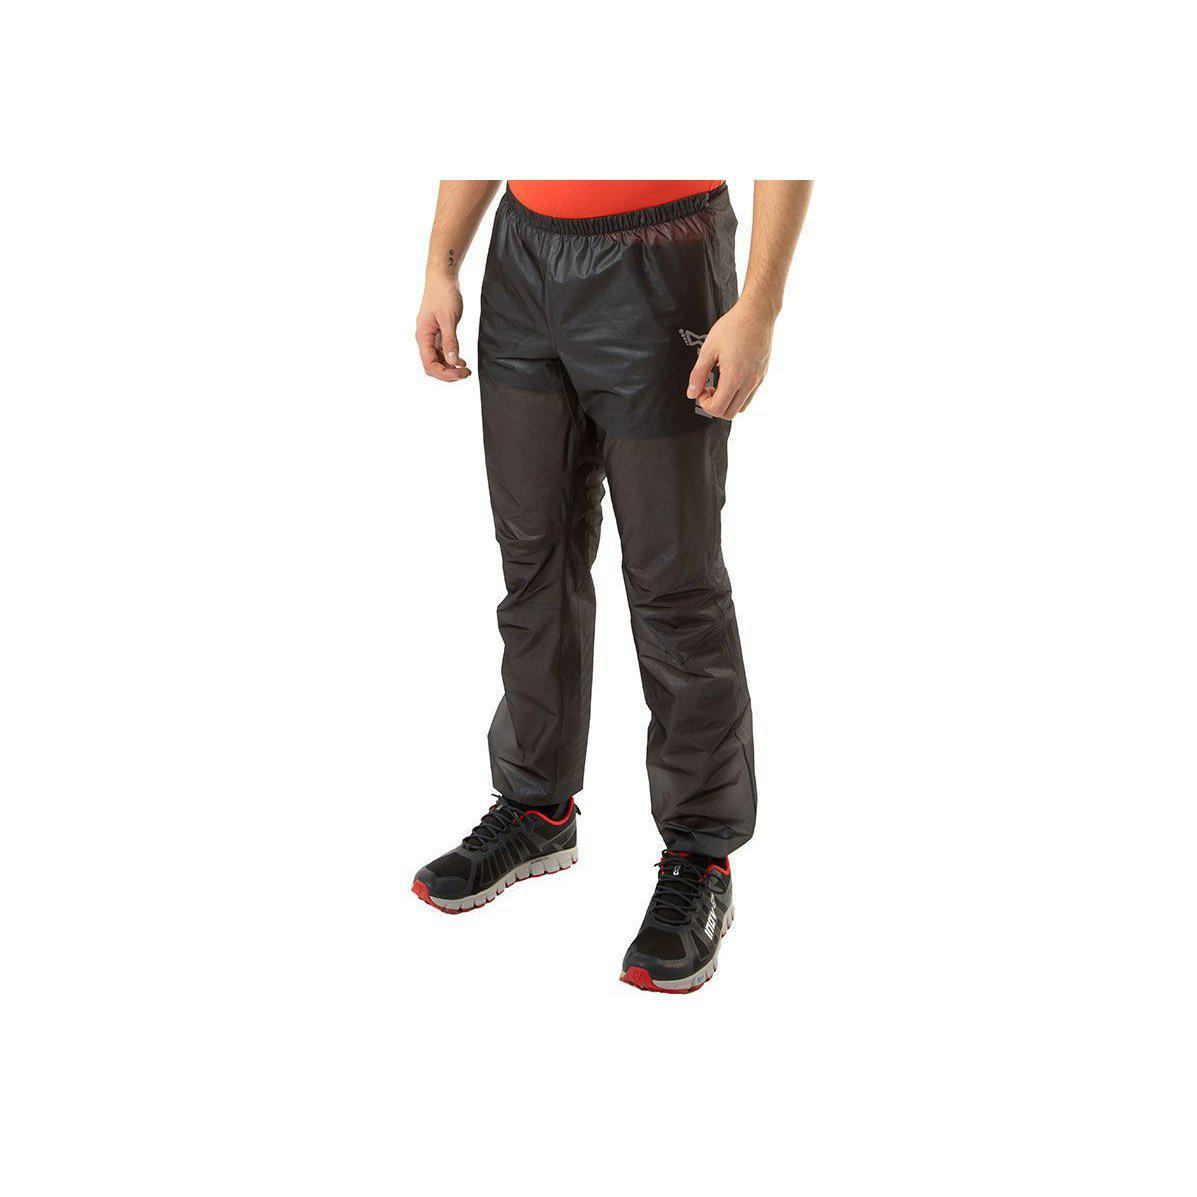 Inov8 All Terrain Race Waterproof Track Pants Black With A Long Standing Reputation Sporting Goods